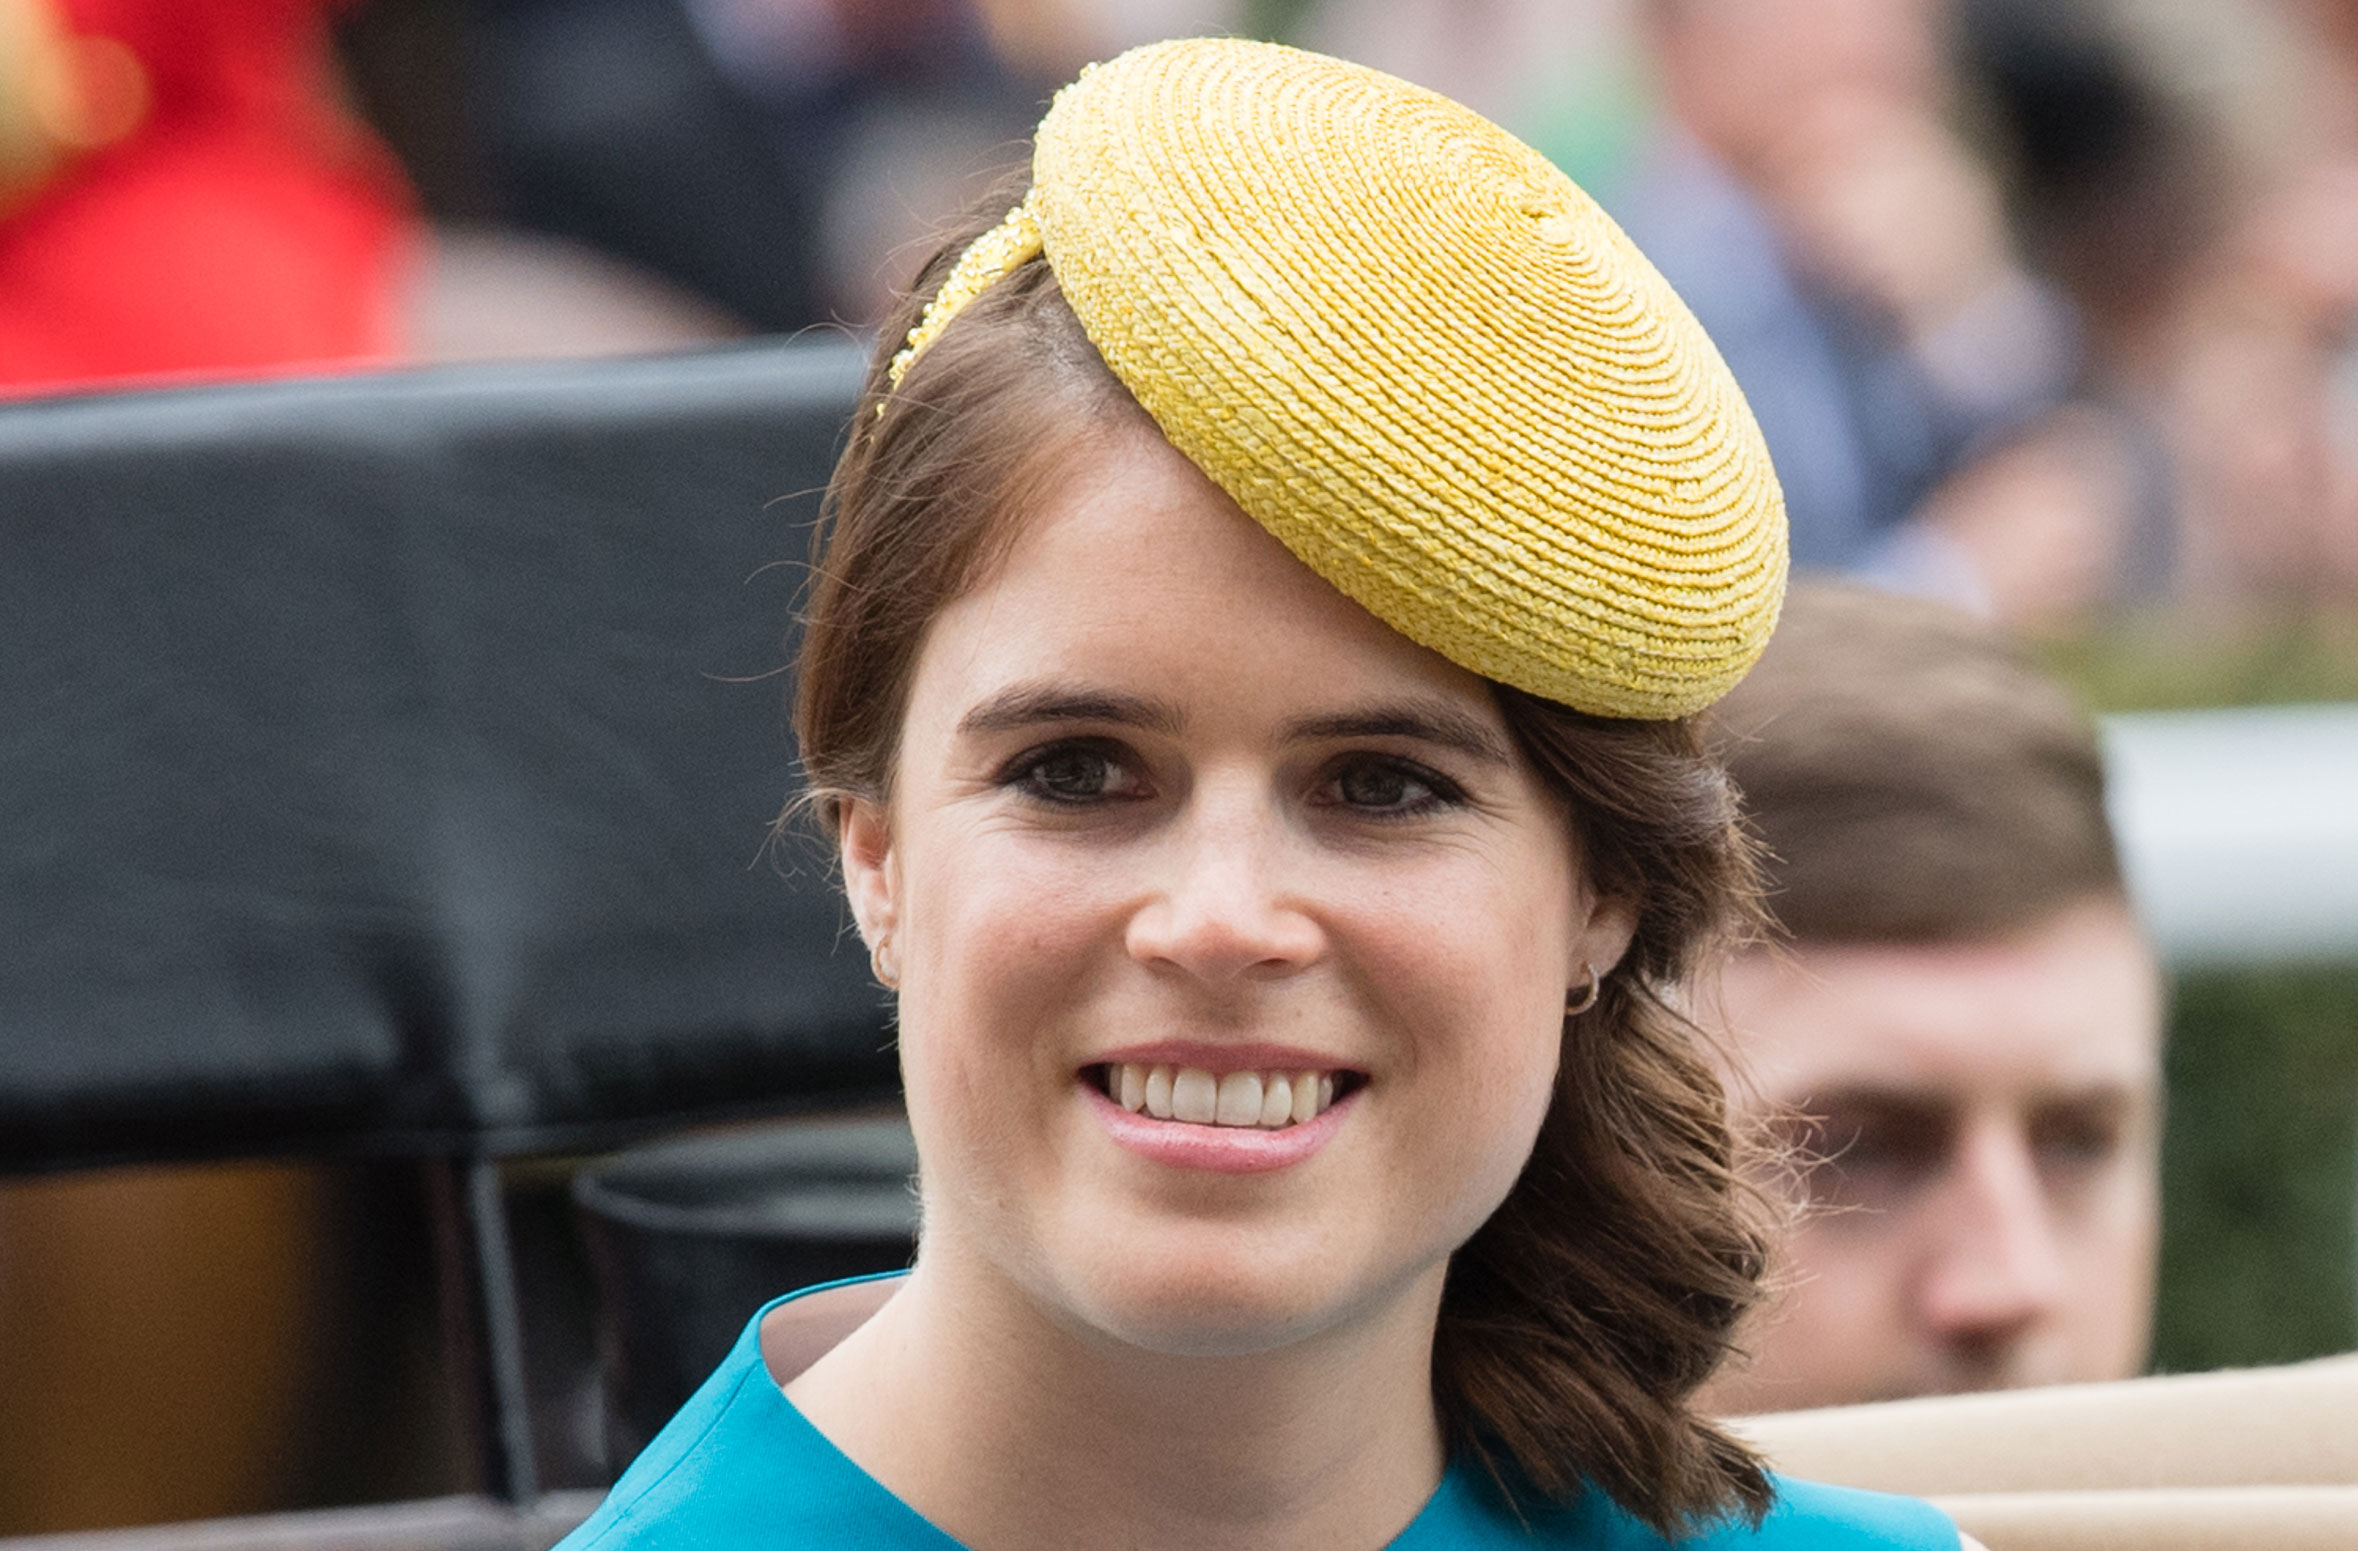 Prince Harry shares rare glimpse into Princess Eugenie's Kensington Palace cottage – including the lovely photo she has on her wall